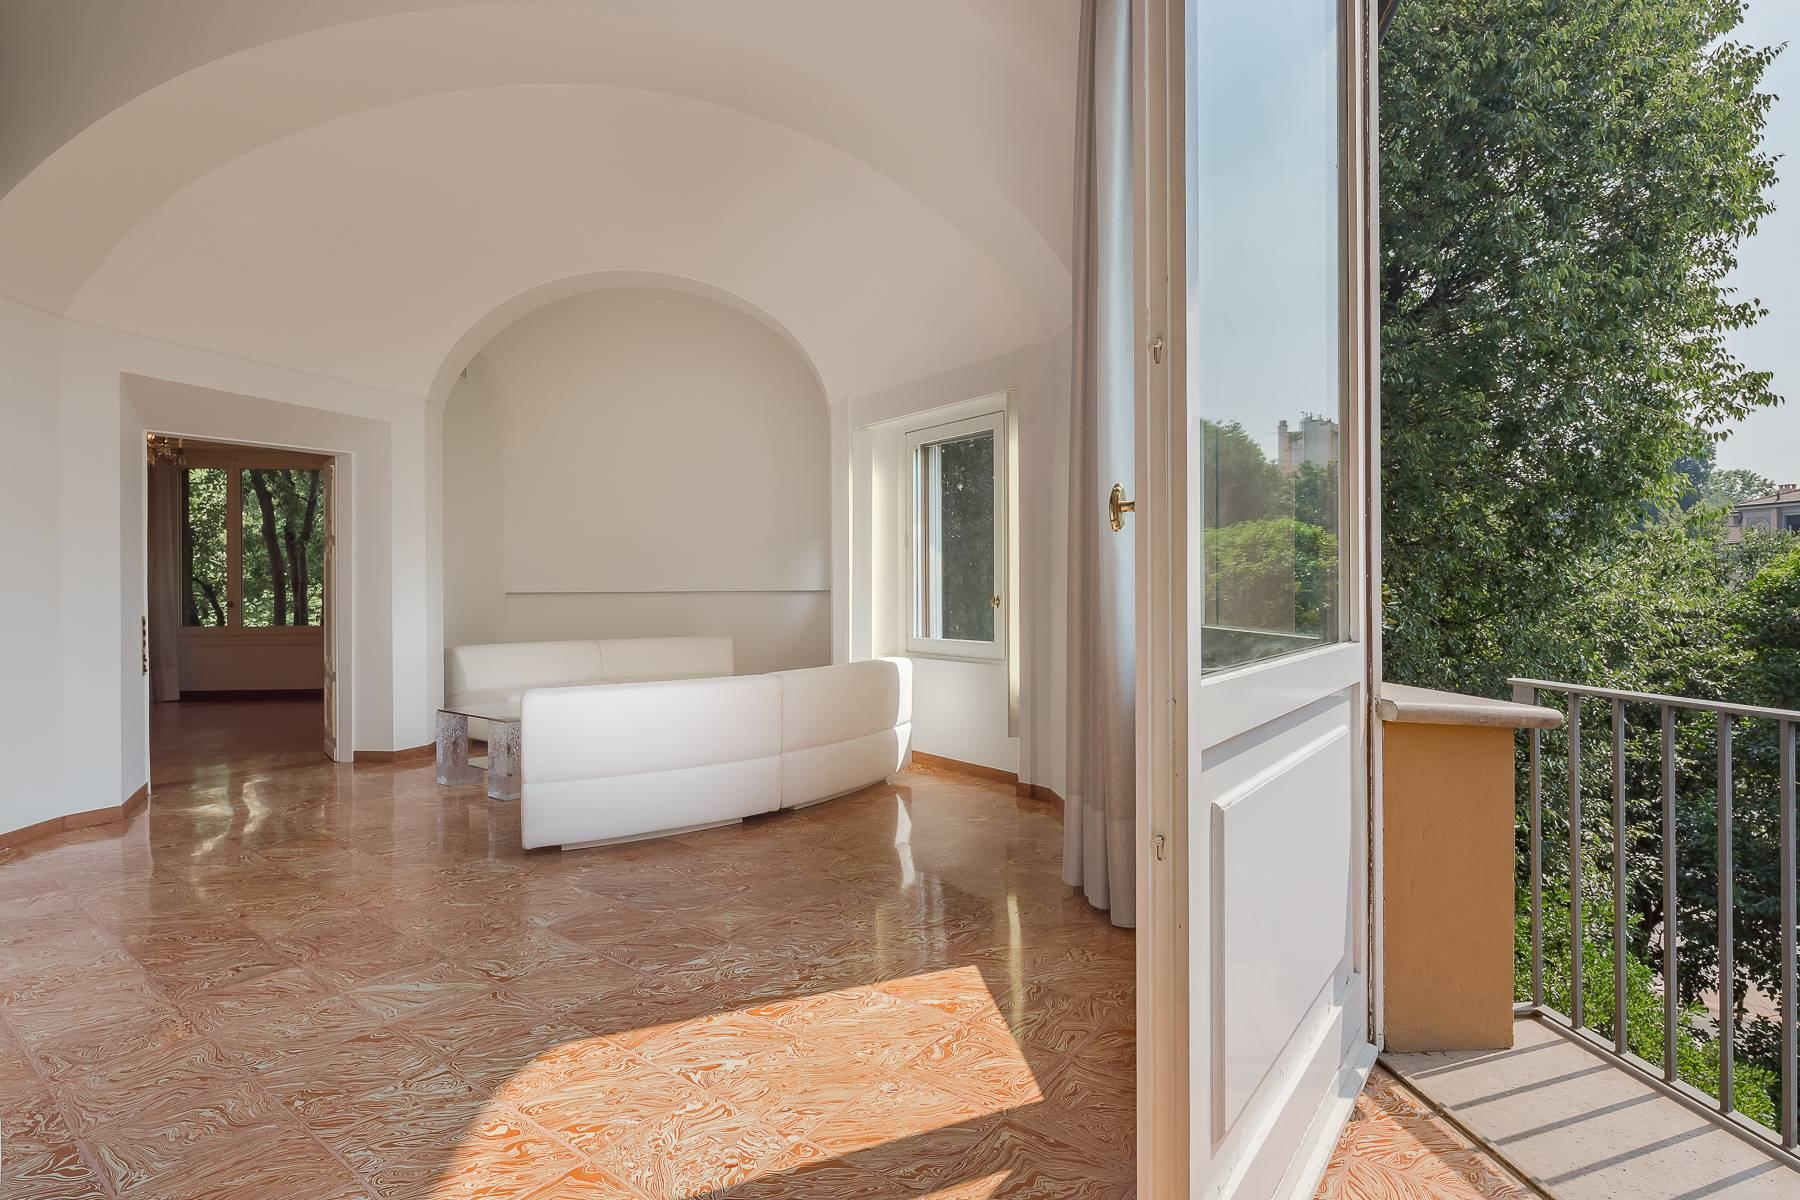 Inviting 482 sqm property with a view of the greenery in the XX Settembre / Tamburini area - 15